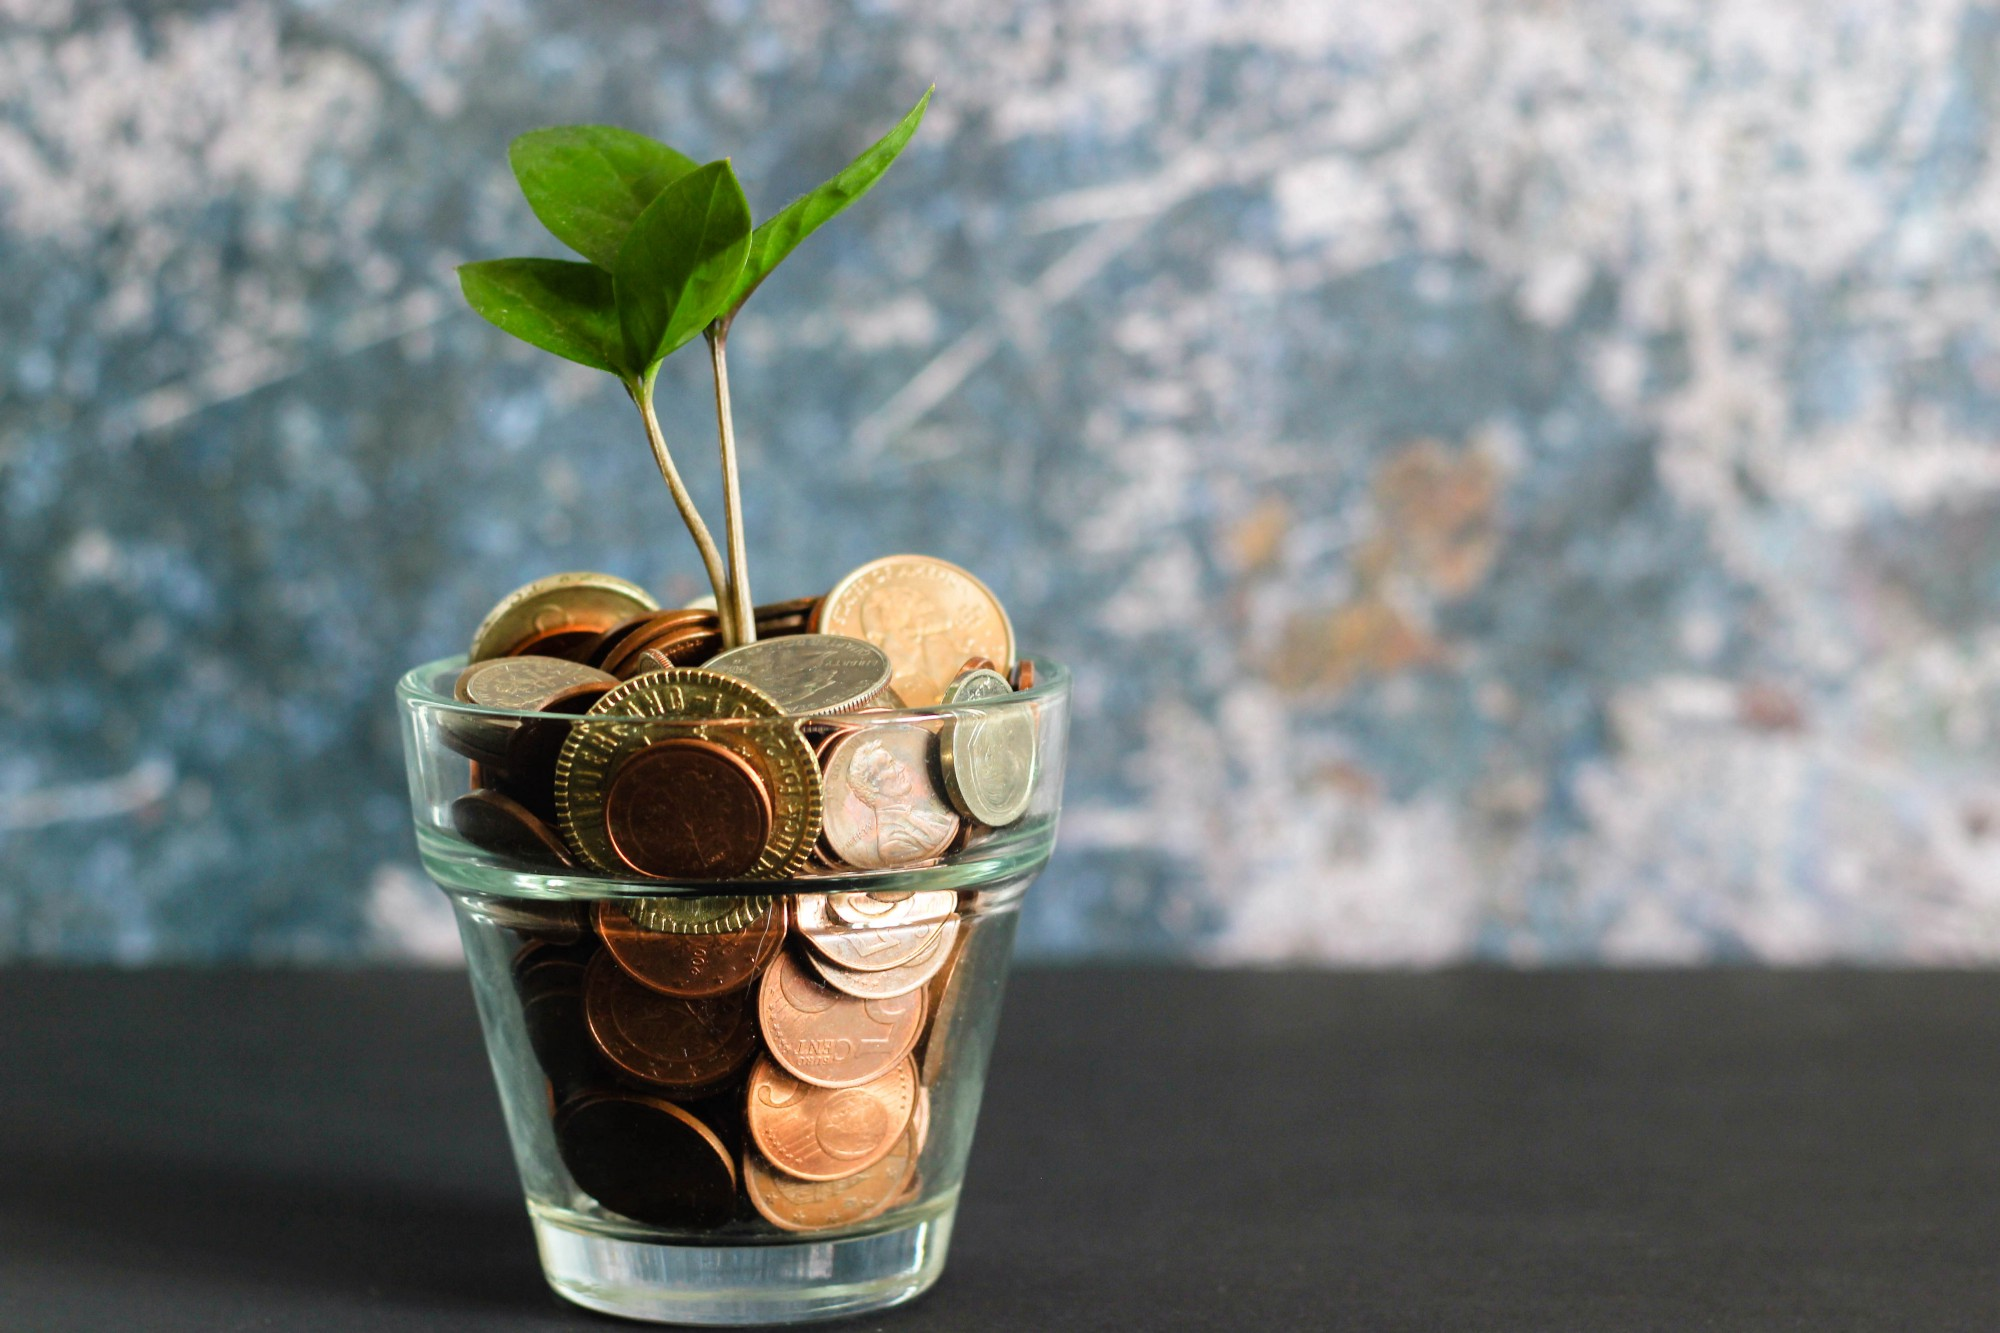 A plant growing from a glass filled with coins.